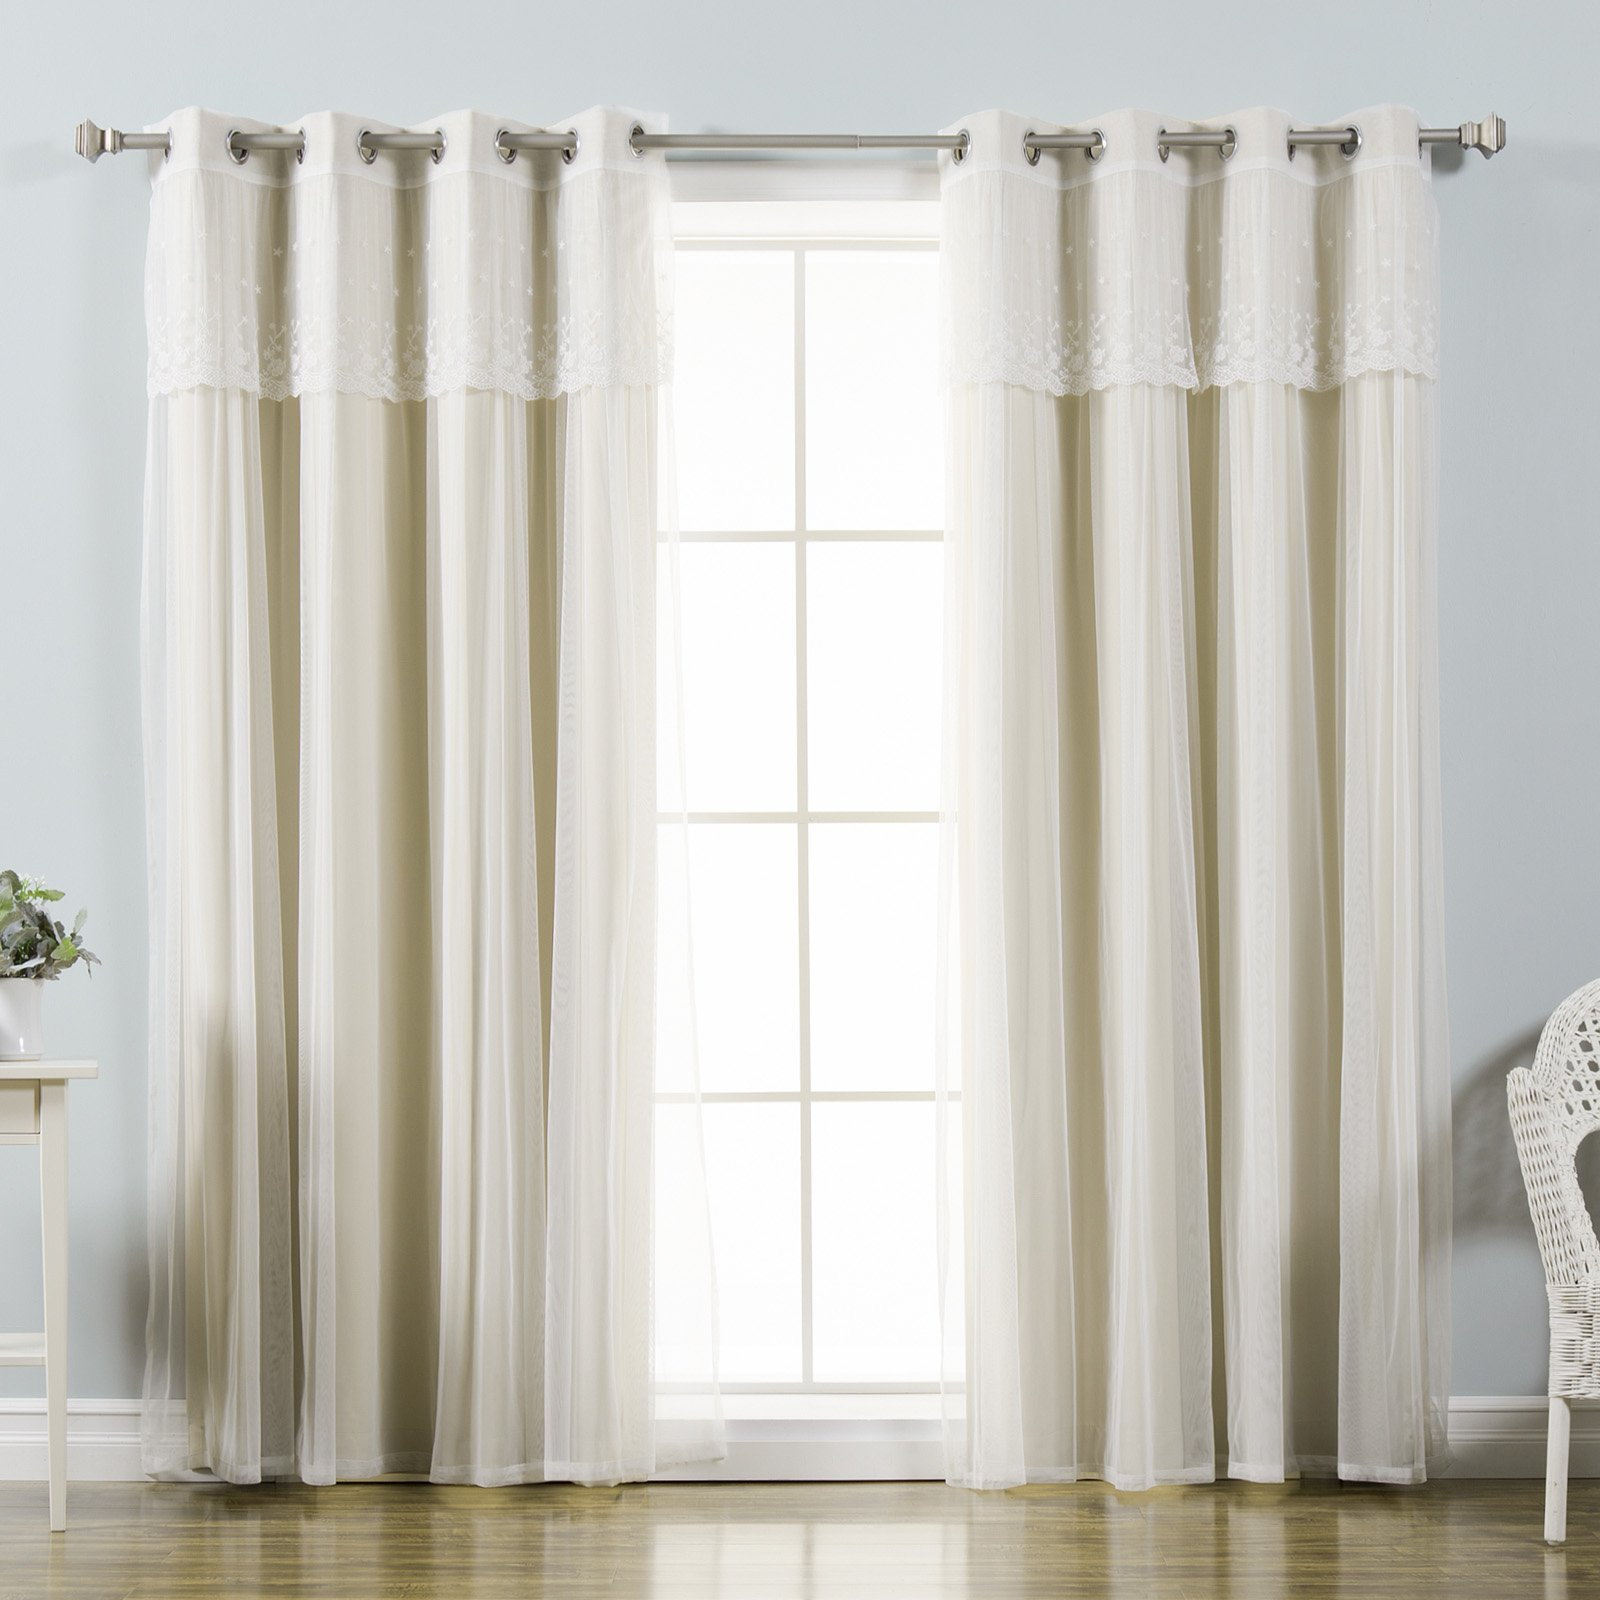 Aurora Home Mix & Match Tulle Sheer With Attached Valance And Blackout 4 Piece Curtain Panel Pair Inside Tulle Sheer With Attached Valance And Blackout 4 Piece Curtain Panel Pairs (View 14 of 30)